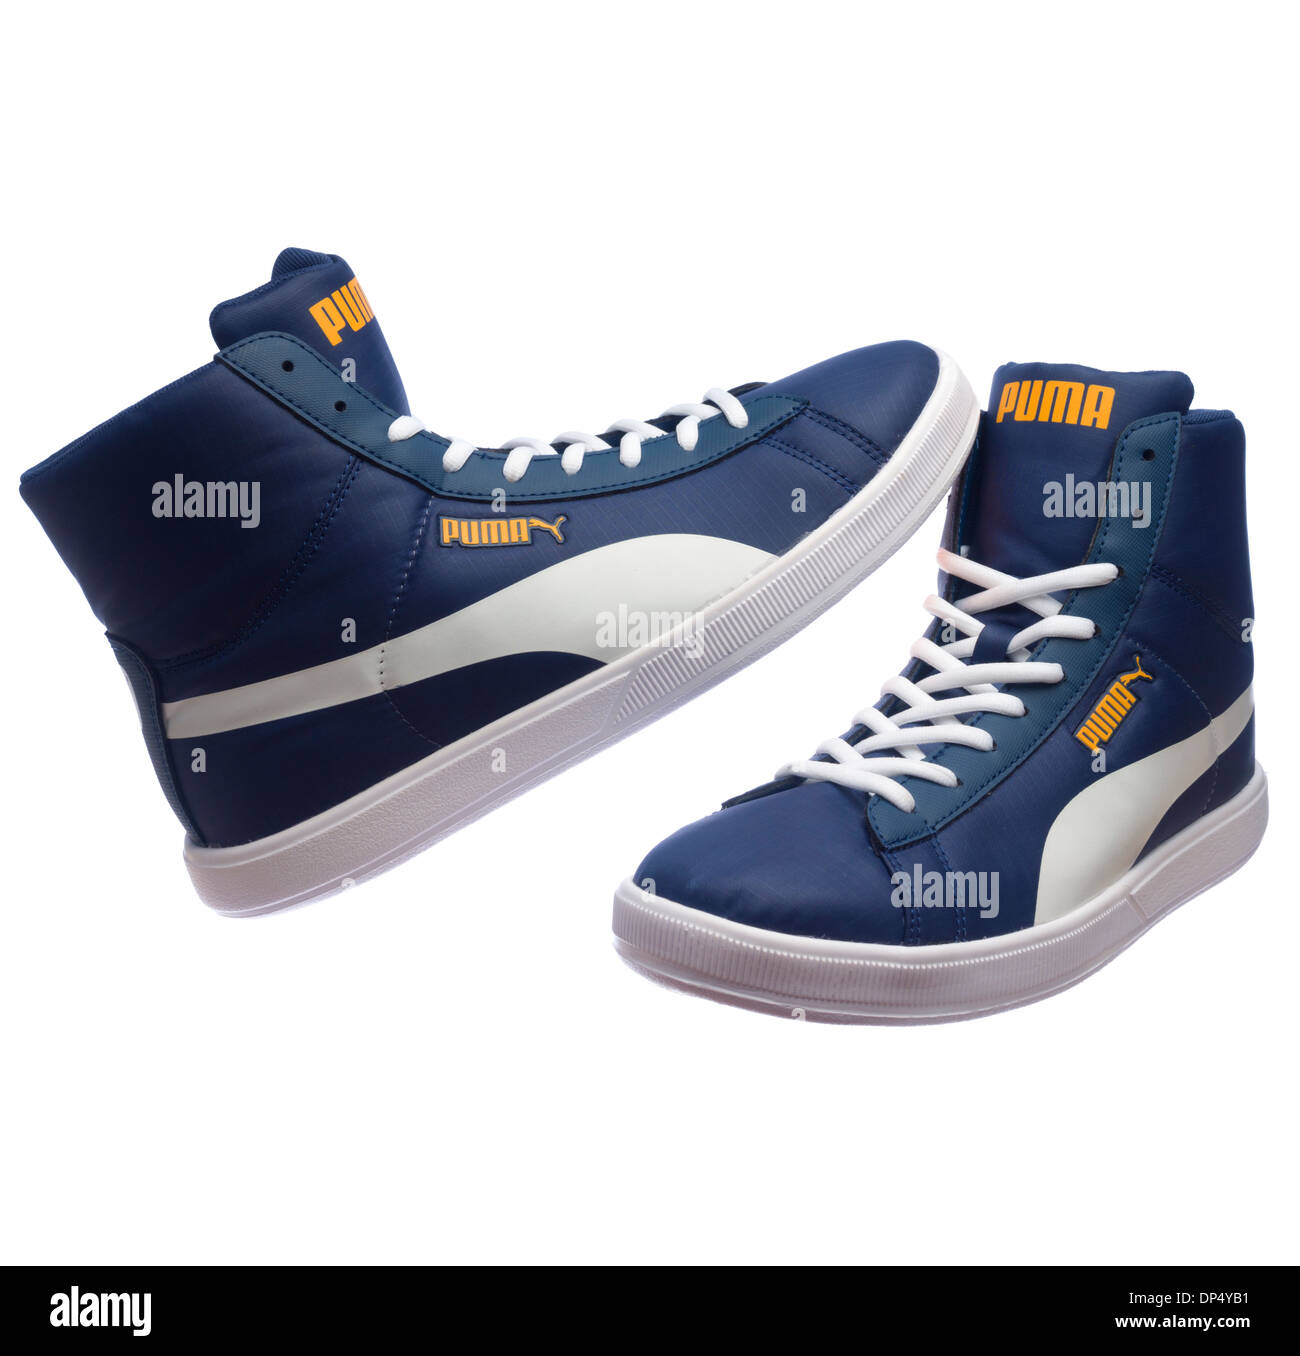 Blue retro Puma shoes isolated on white background - Stock Image 4572f9a647a8